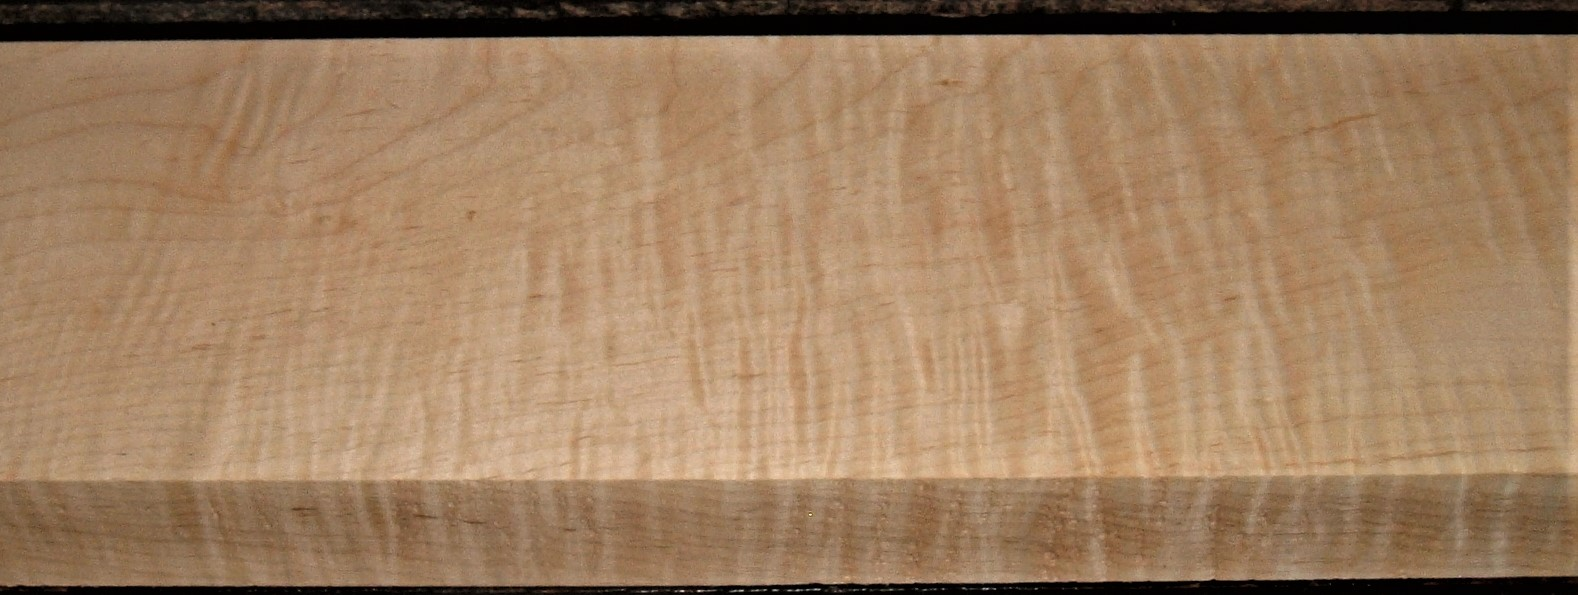 M2007-585JJ, 1-3/4x6-1/4x43, Curly Tiger Maple